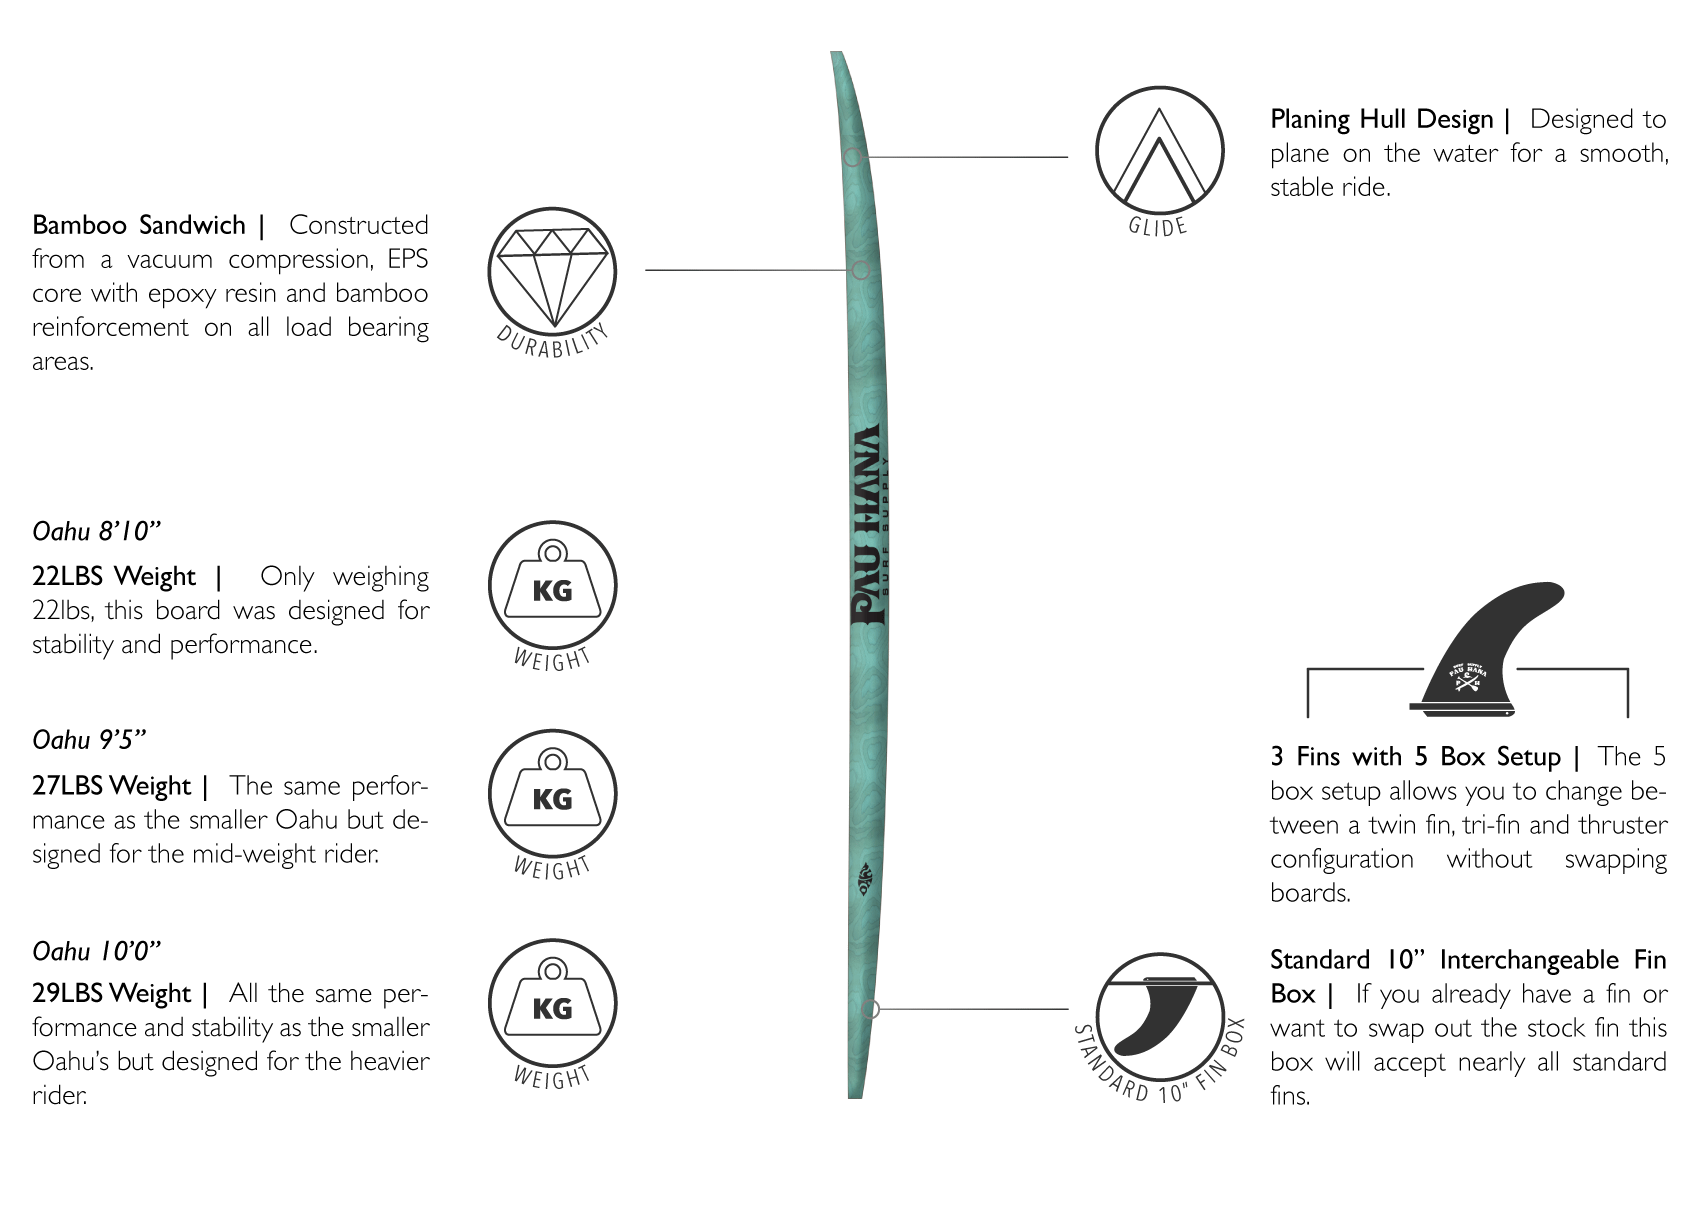 Features of the Oahu SUP construction, planing hull design and included interchangeable fin